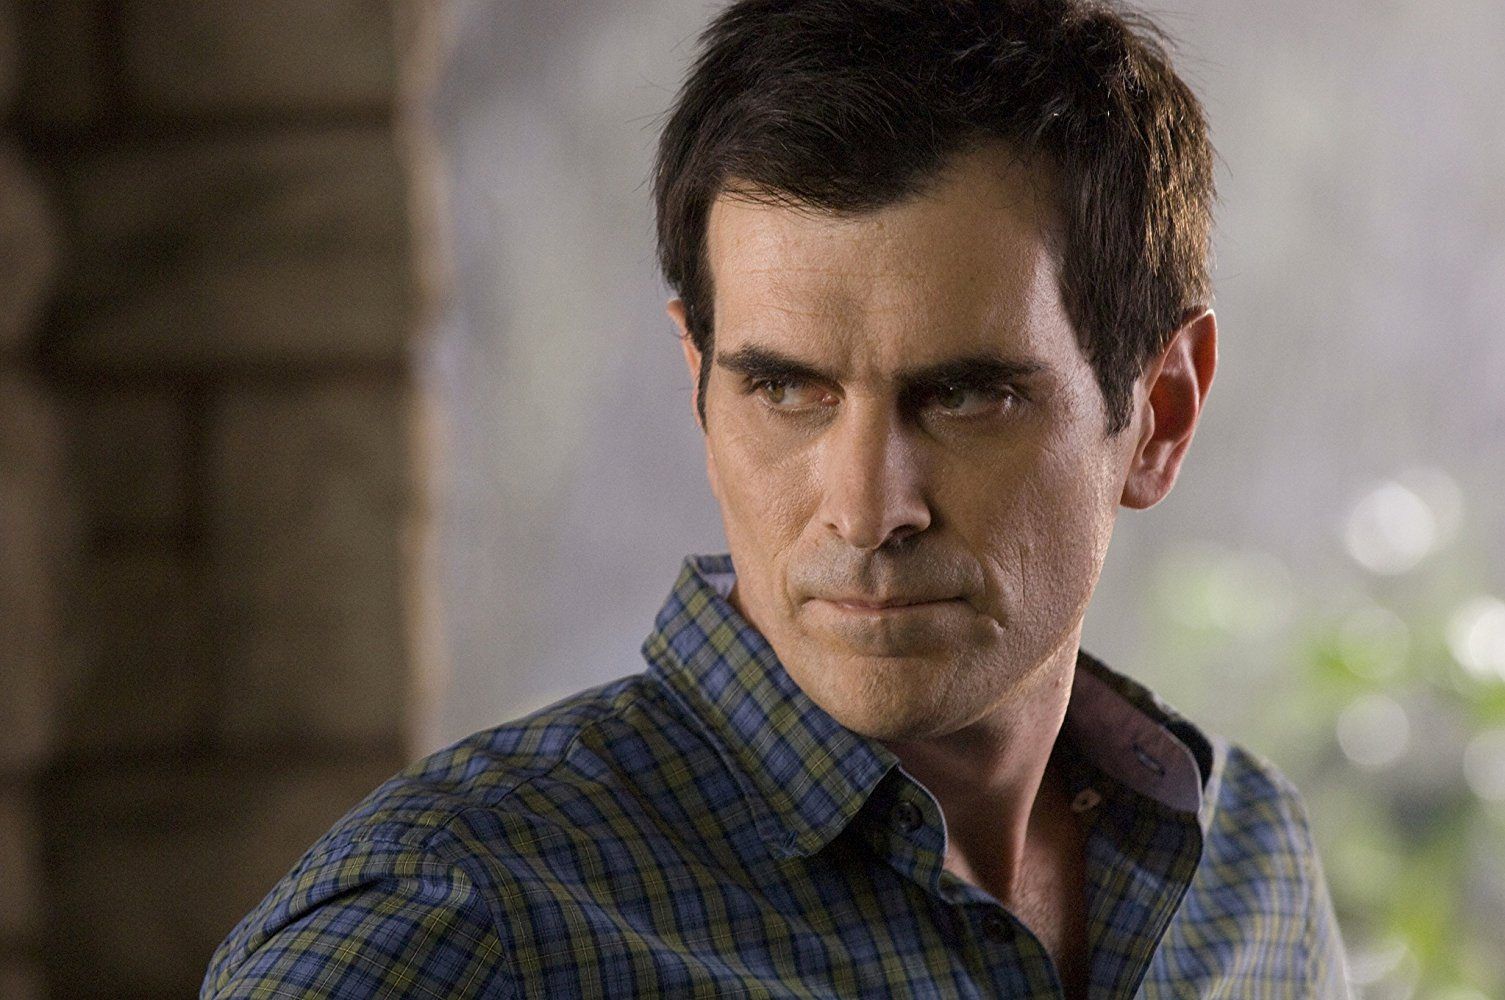 His role in The Incredible Hulk helped boost Ty Burrell's net worth.